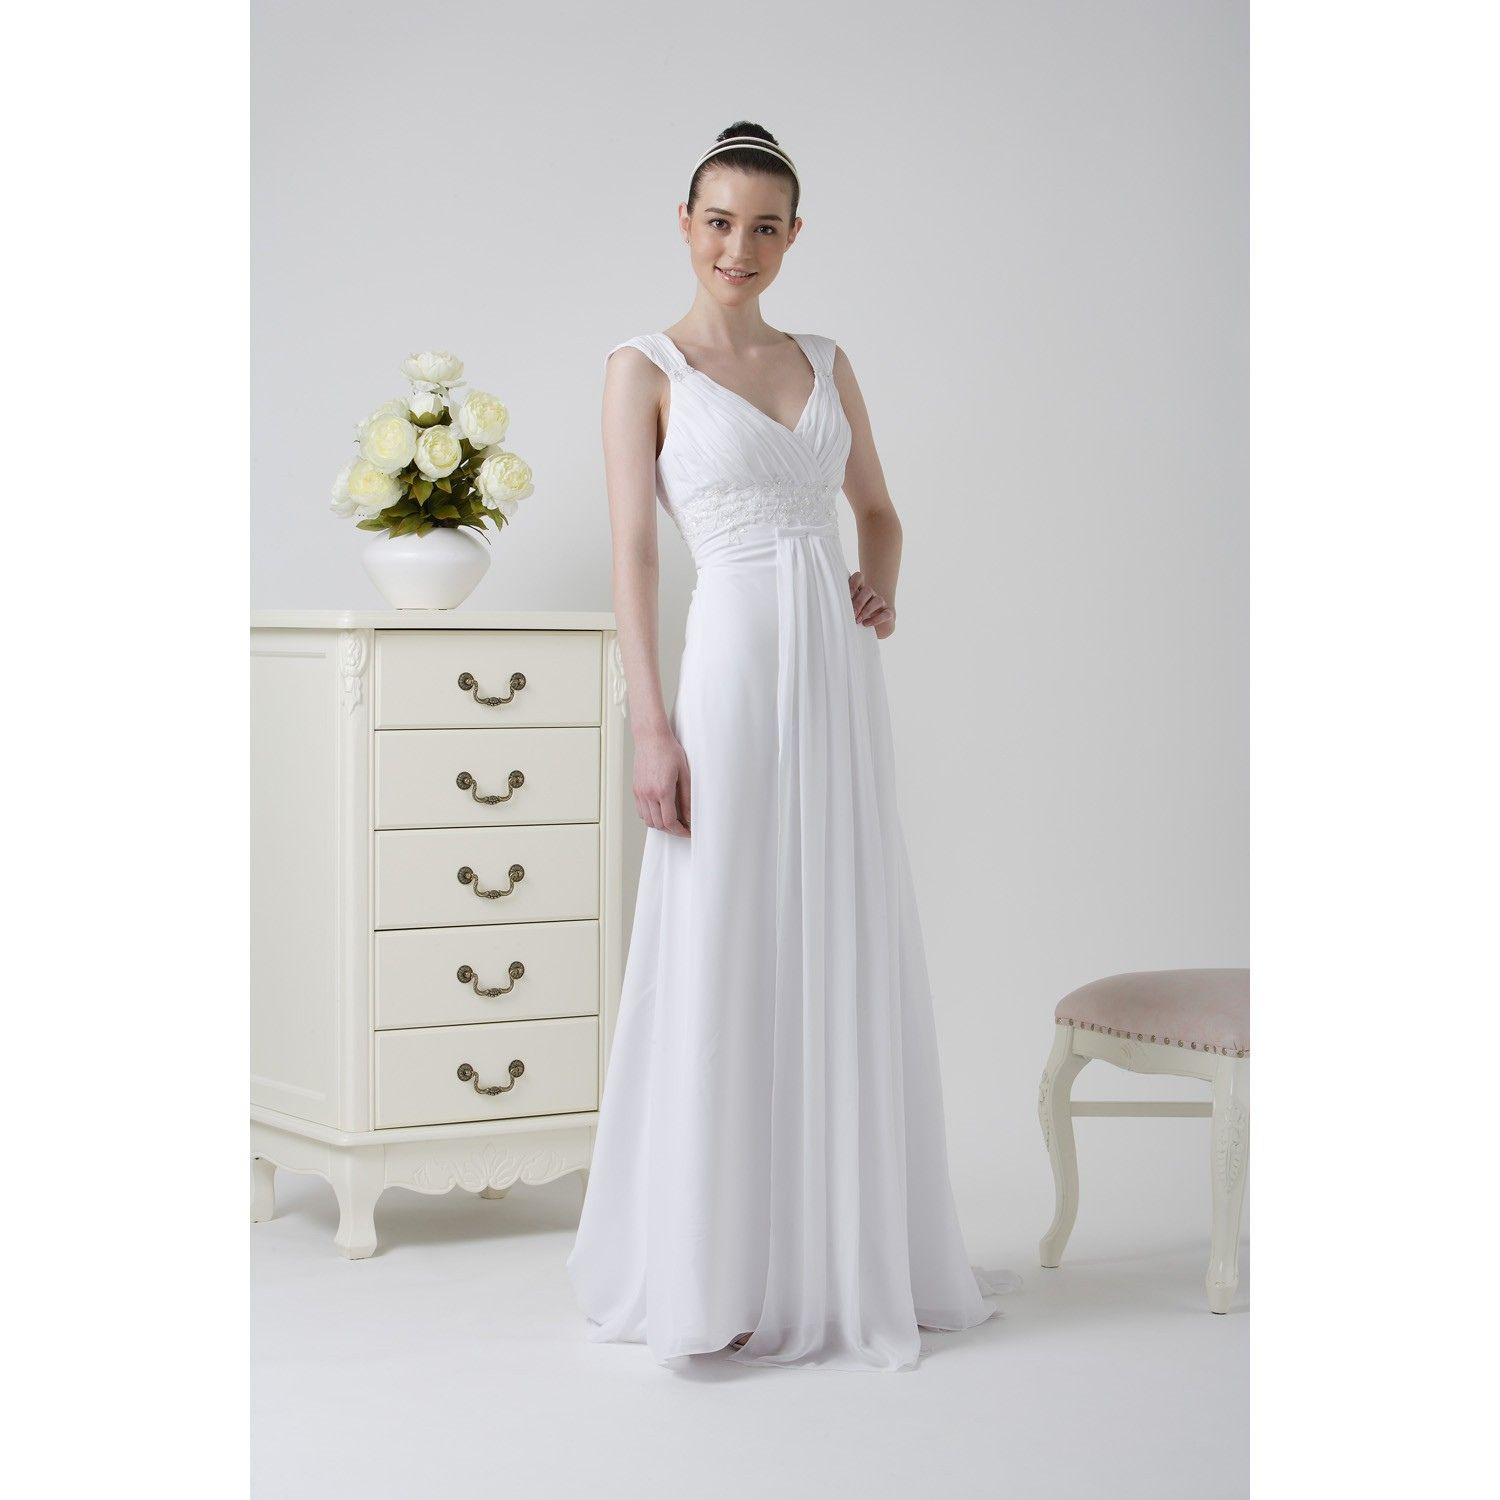 76d10698119e1 2019 the Lightbox Wedding Dresses - Best Shapewear for Wedding Dress Check  more at http